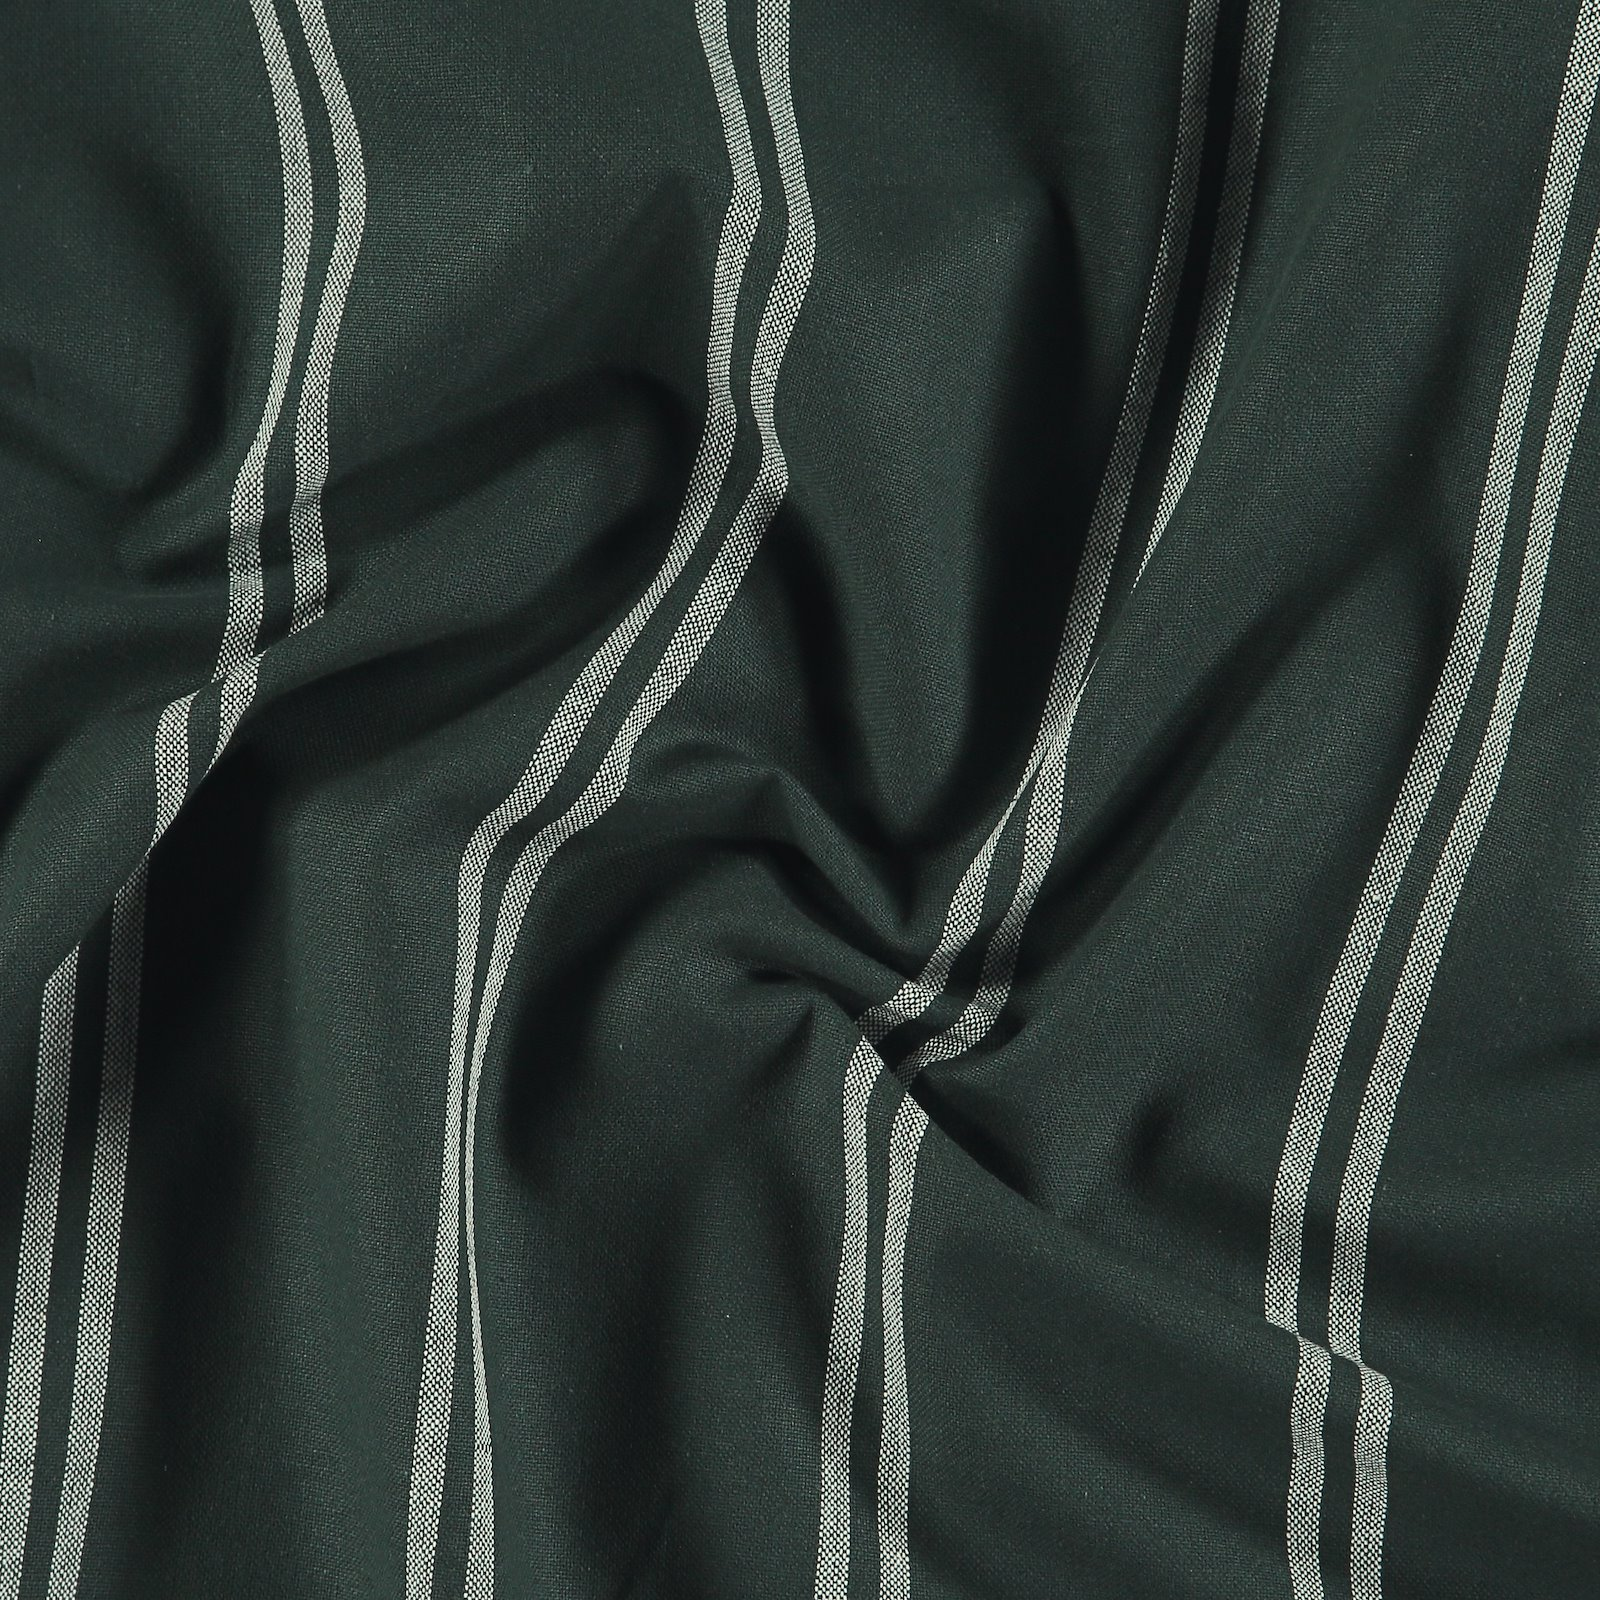 Woven yarn dyed black/off white stripe 816256_pack